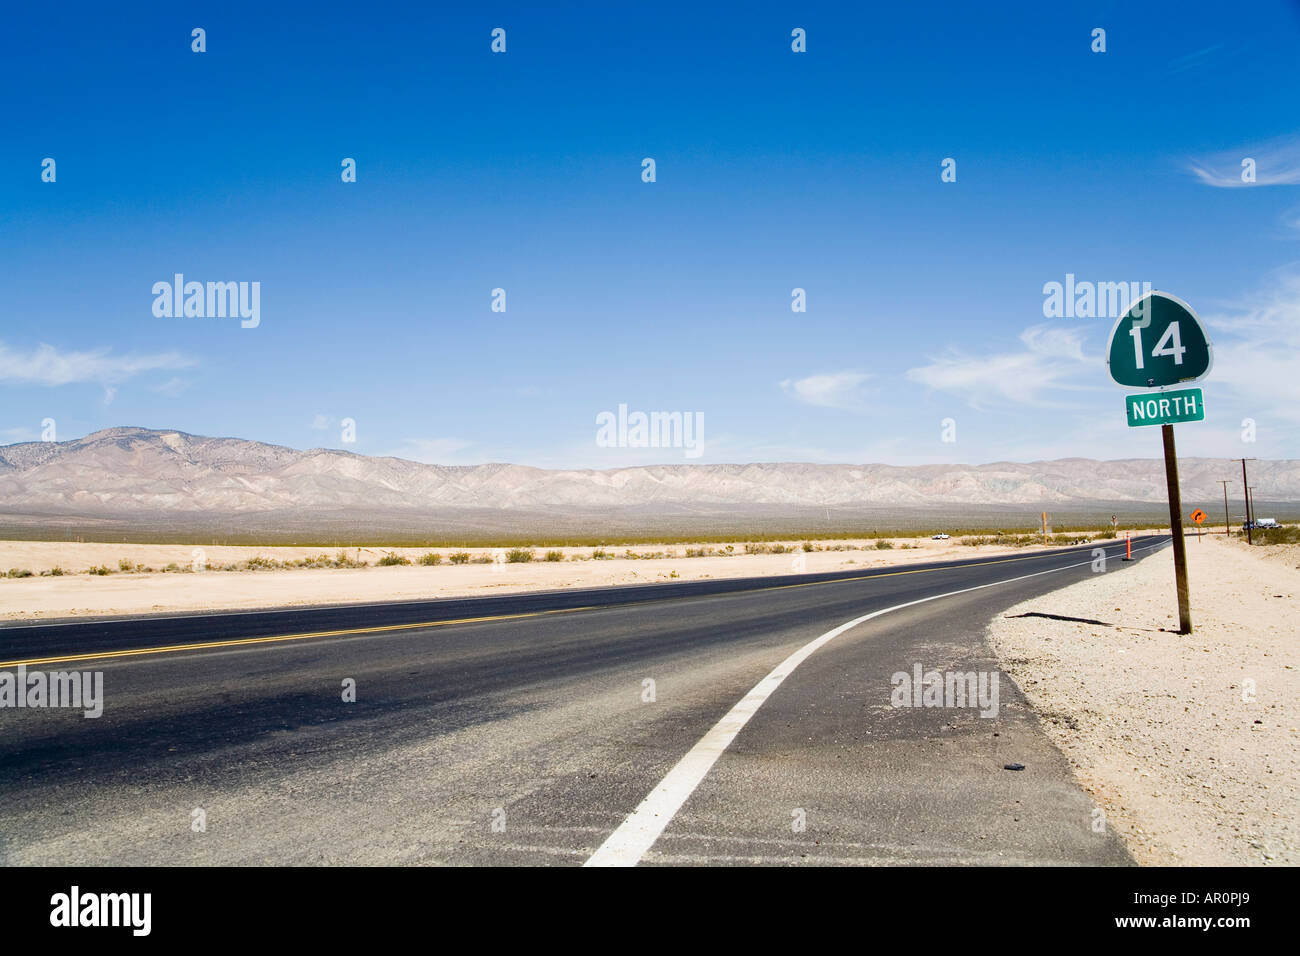 Highway 14 junction North, Antelope Valley Freeway, Midland Trail, California, USA - Stock Image